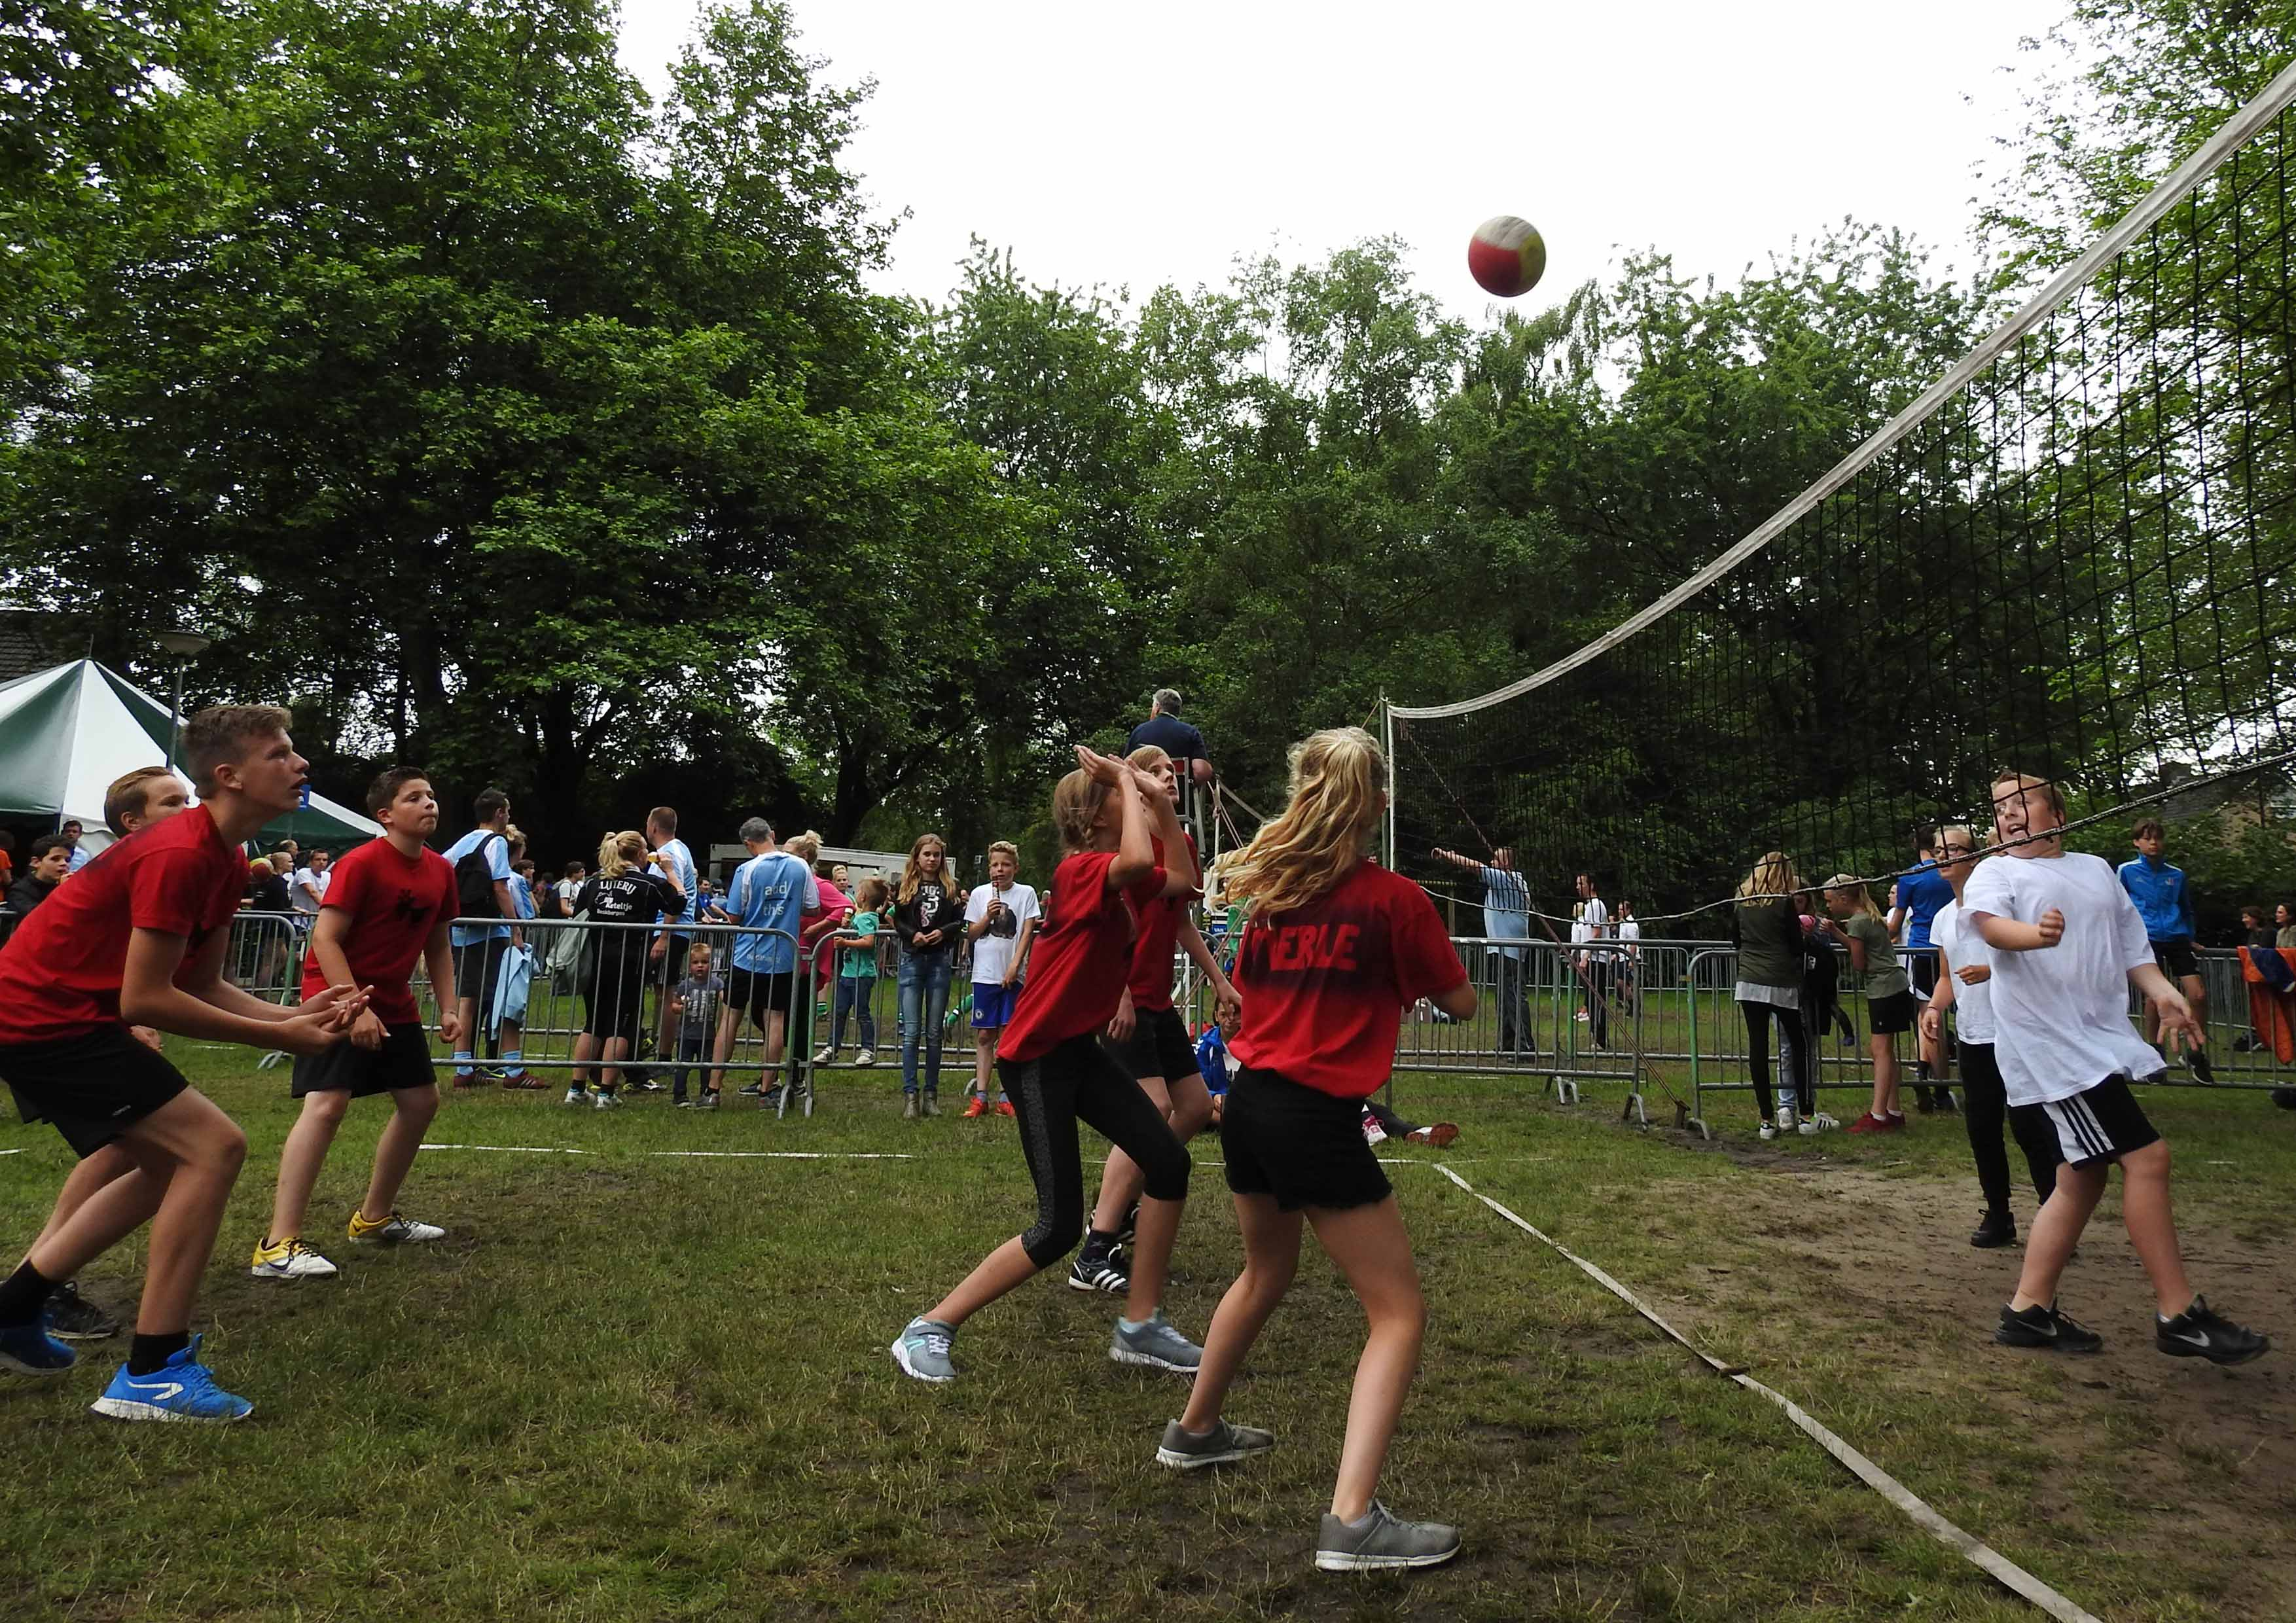 2017-06-29_BB_Straatvolleybal (10)